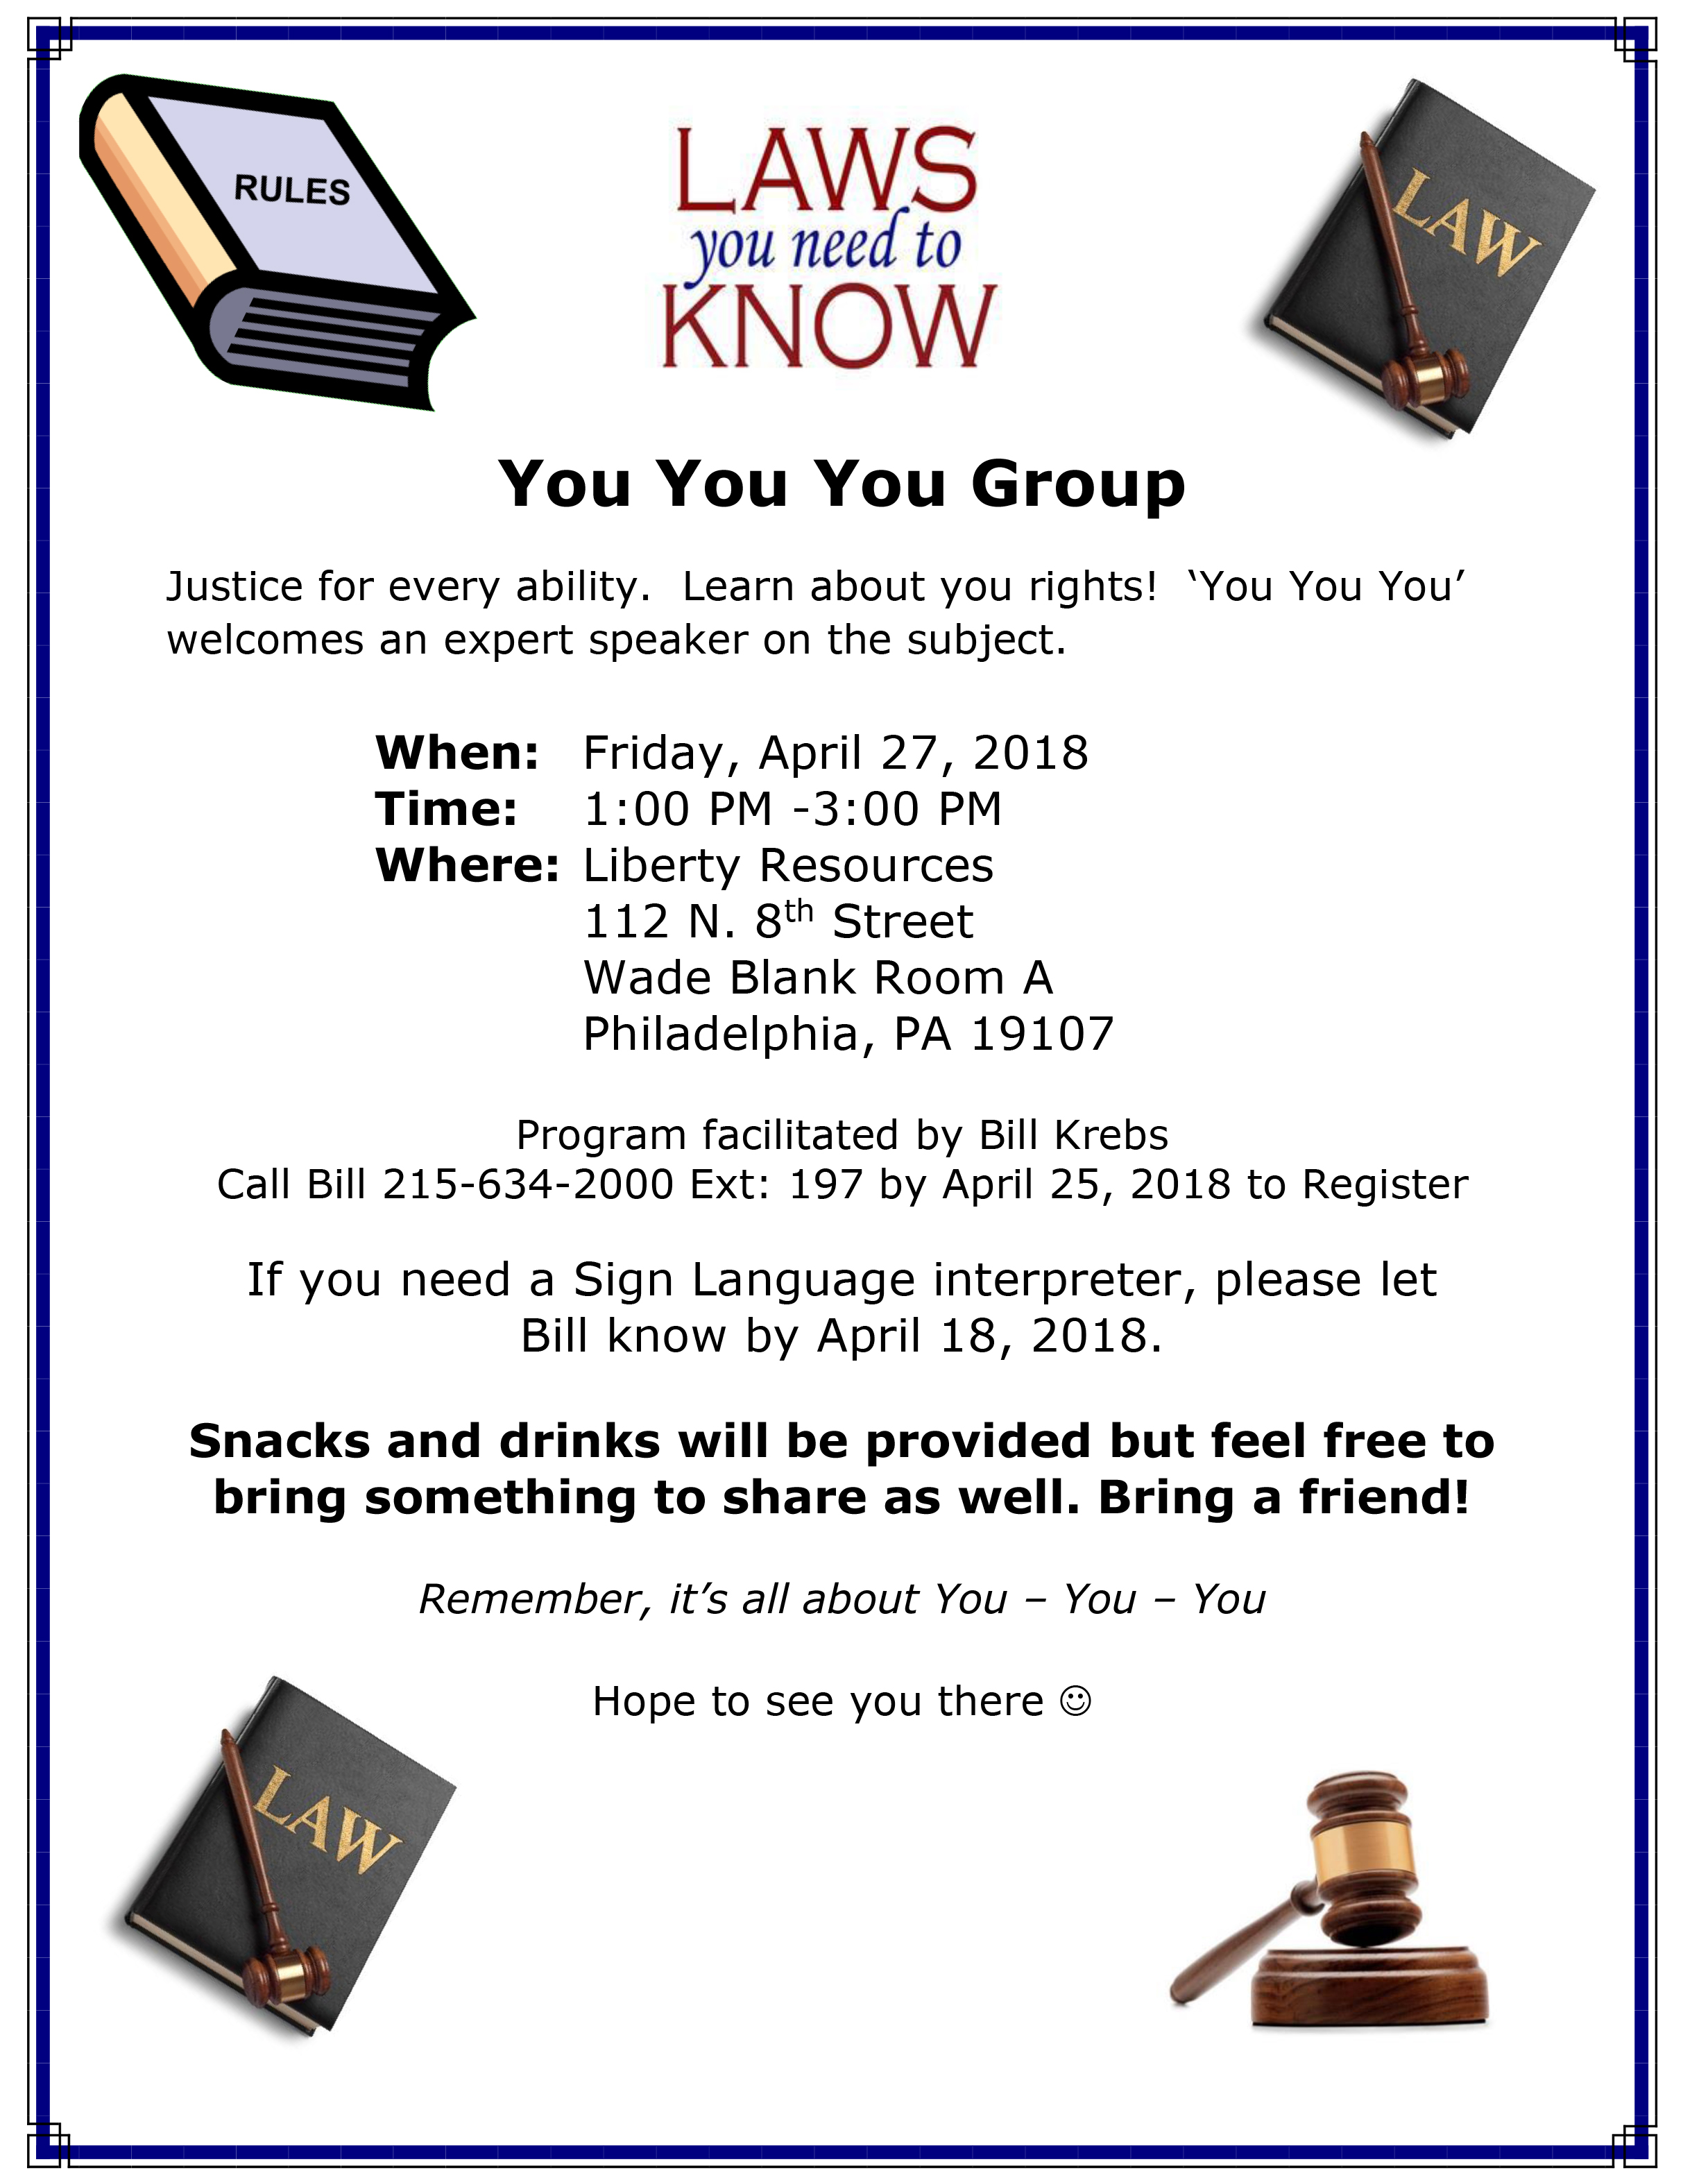 You You You flyer 4/27 meeting. Expert on disability rights will be present.